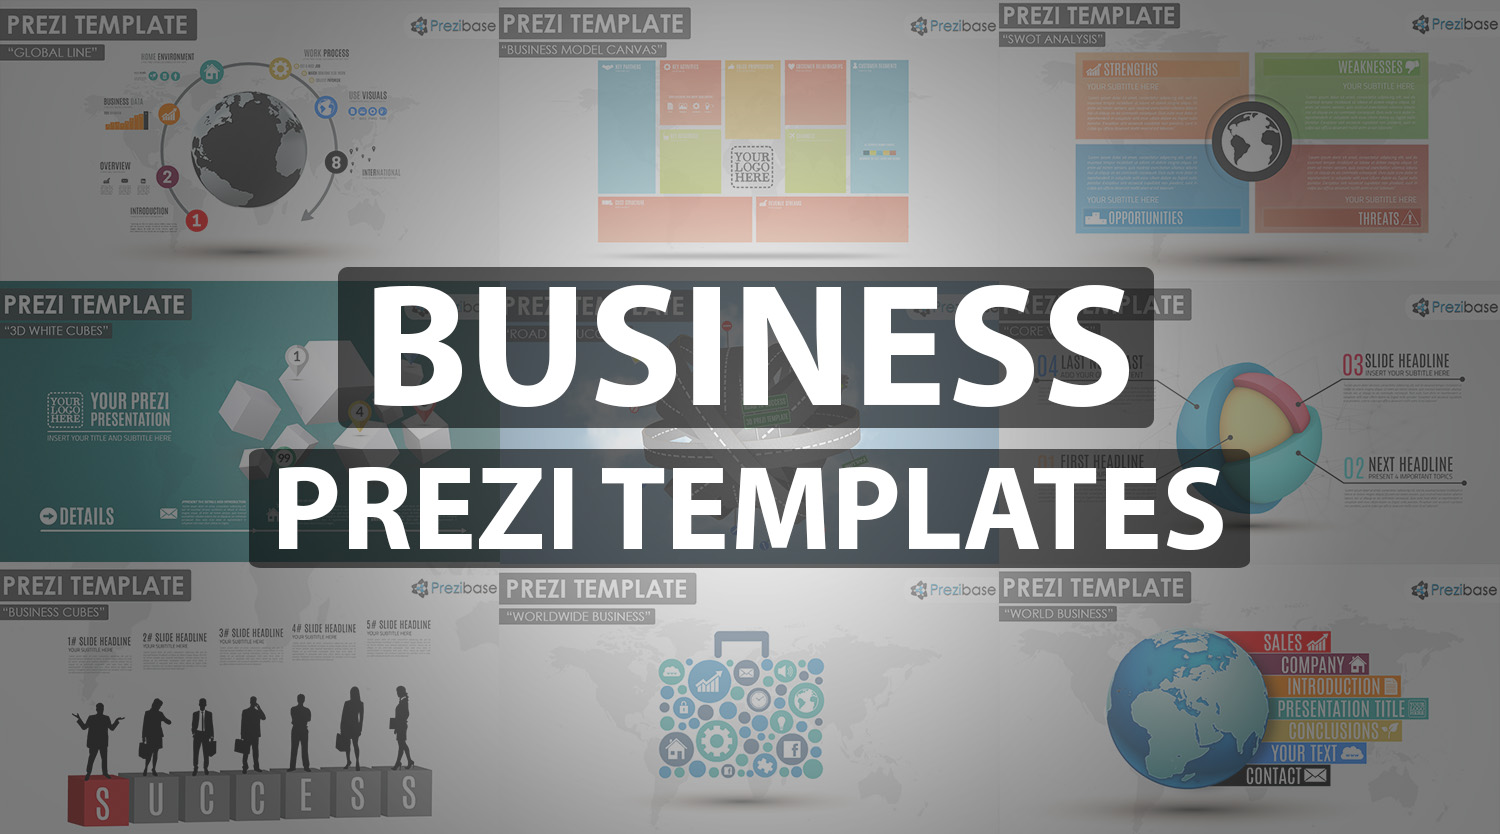 business prezi template professional company presentation